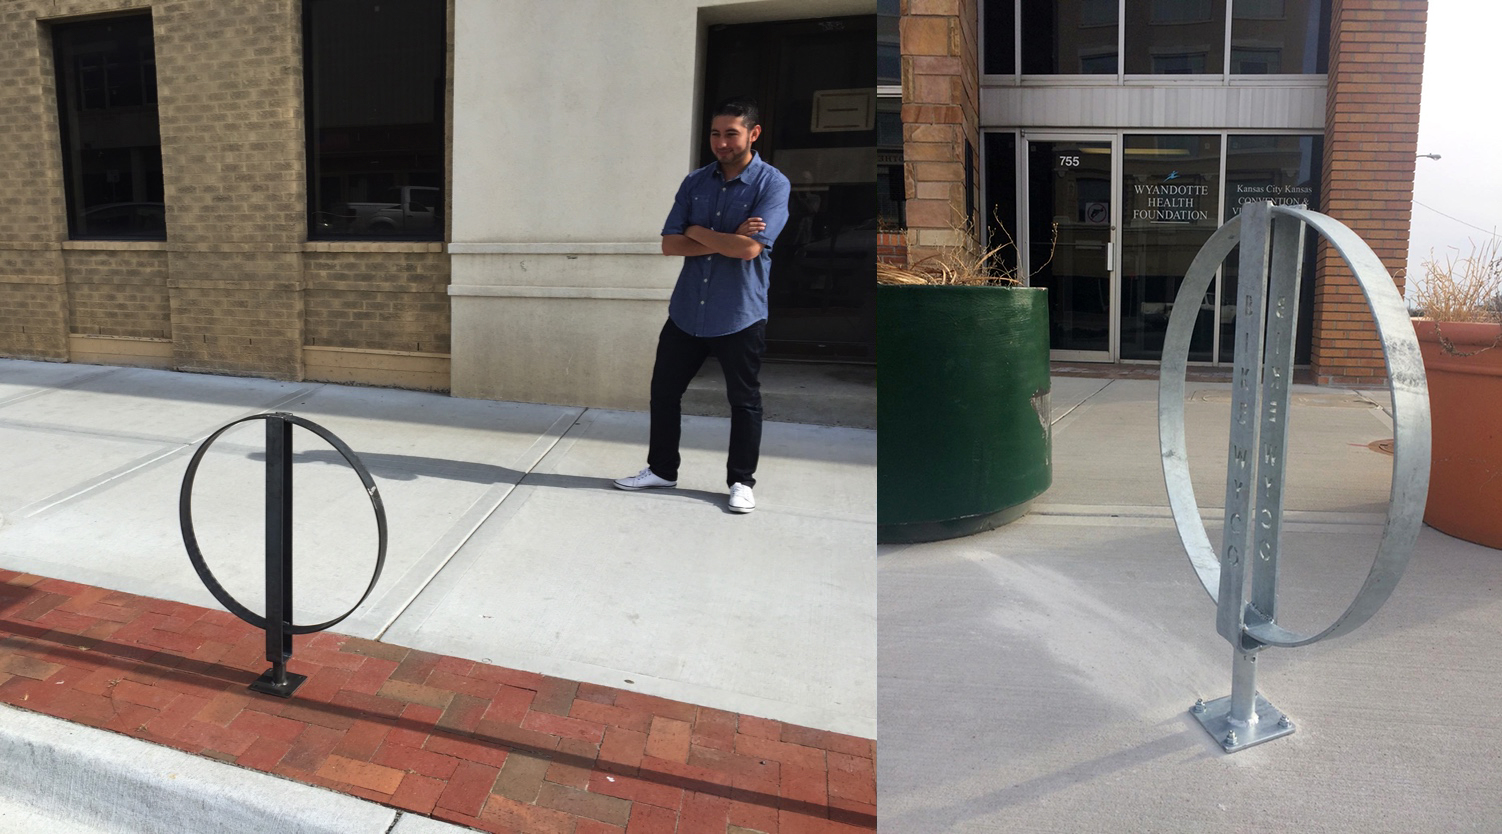 Initial prototype on the left, with Randy Lopez of Wyandotte Health Foundation. Final version is on the right.